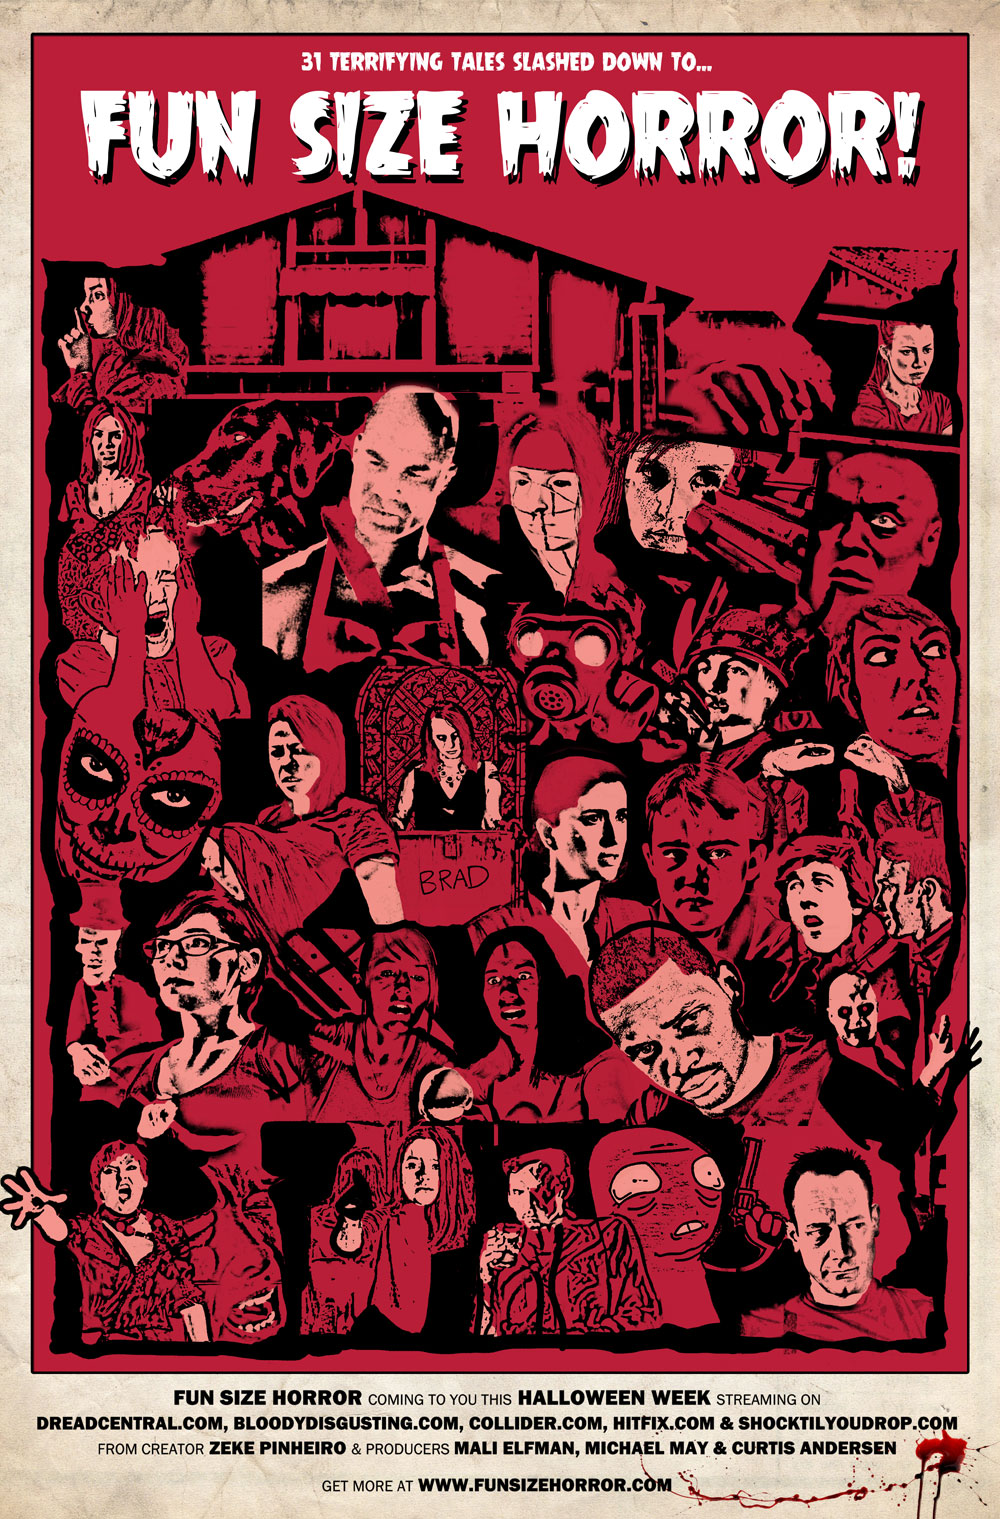 Fun Size Horror Poster - Fun Size Horror Halloween Week Shorts - SEMBLANCE and THE COLLECTION